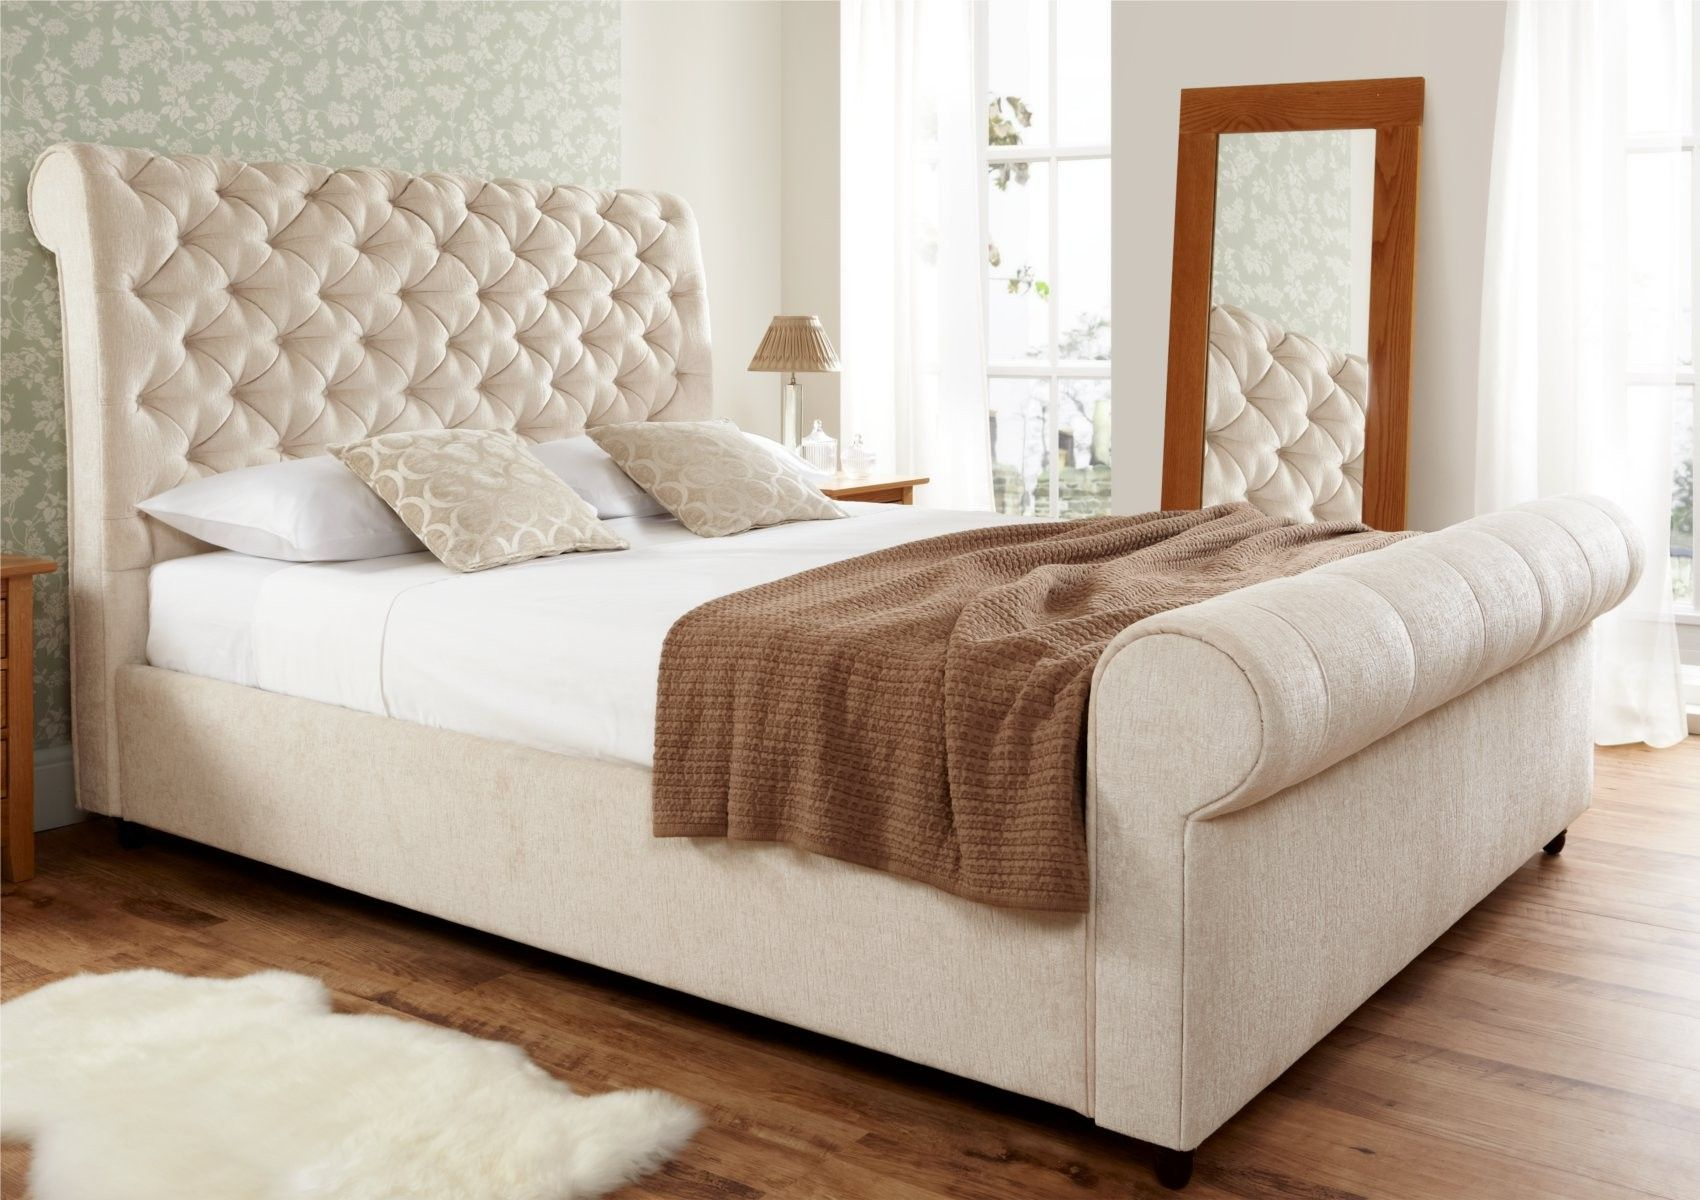 Elegance Upholstered Sleigh Bed   Super King Size Beds   Bed Sizes